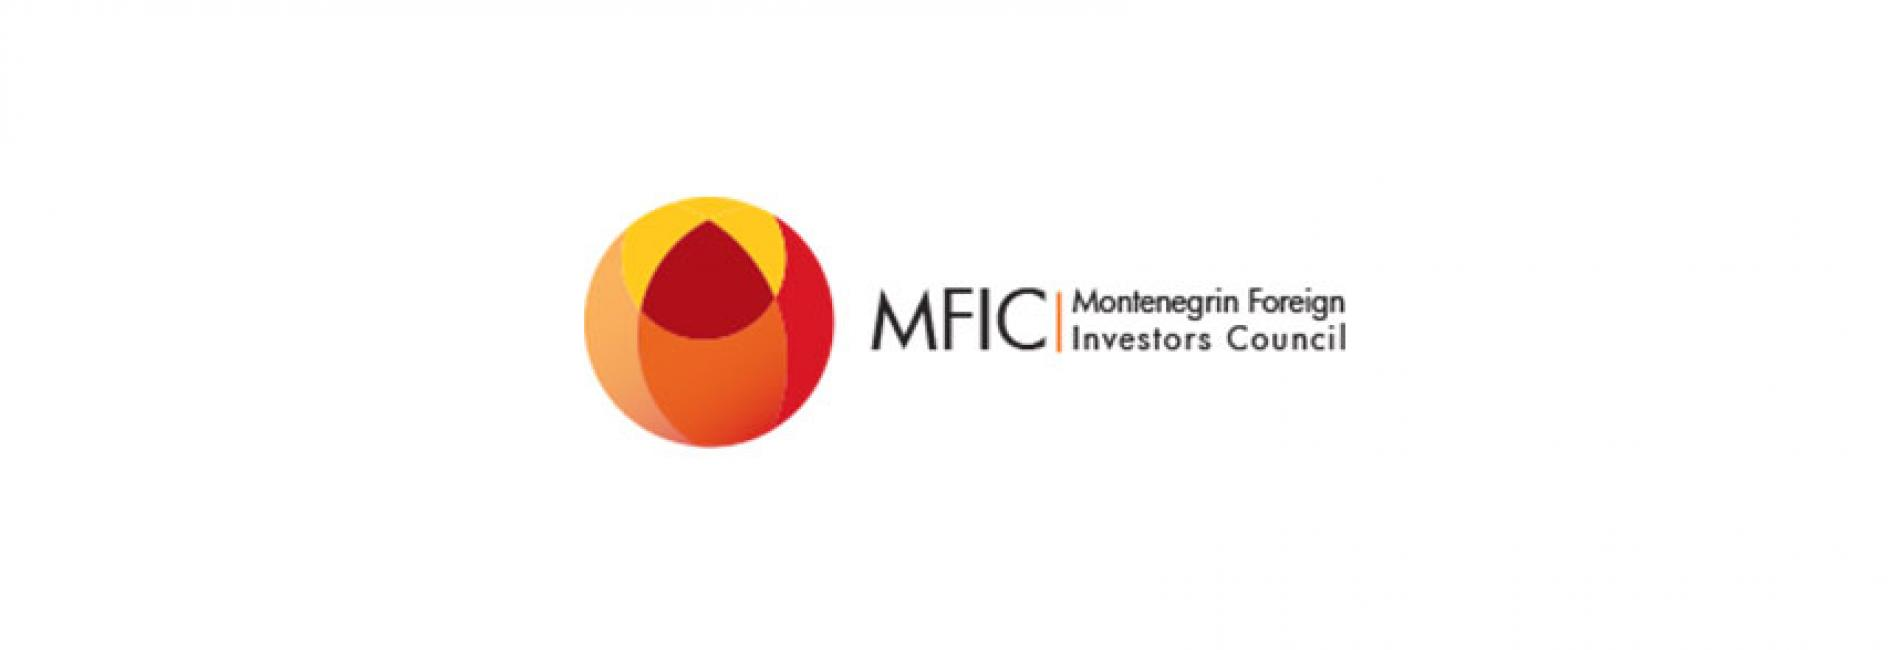 MFIC invites its members: NOVEMBER 21st at 8:30, MFIC ANNUAL ASSEMBLY WITH PRIME MINISTER AS SPECIAL GUEST